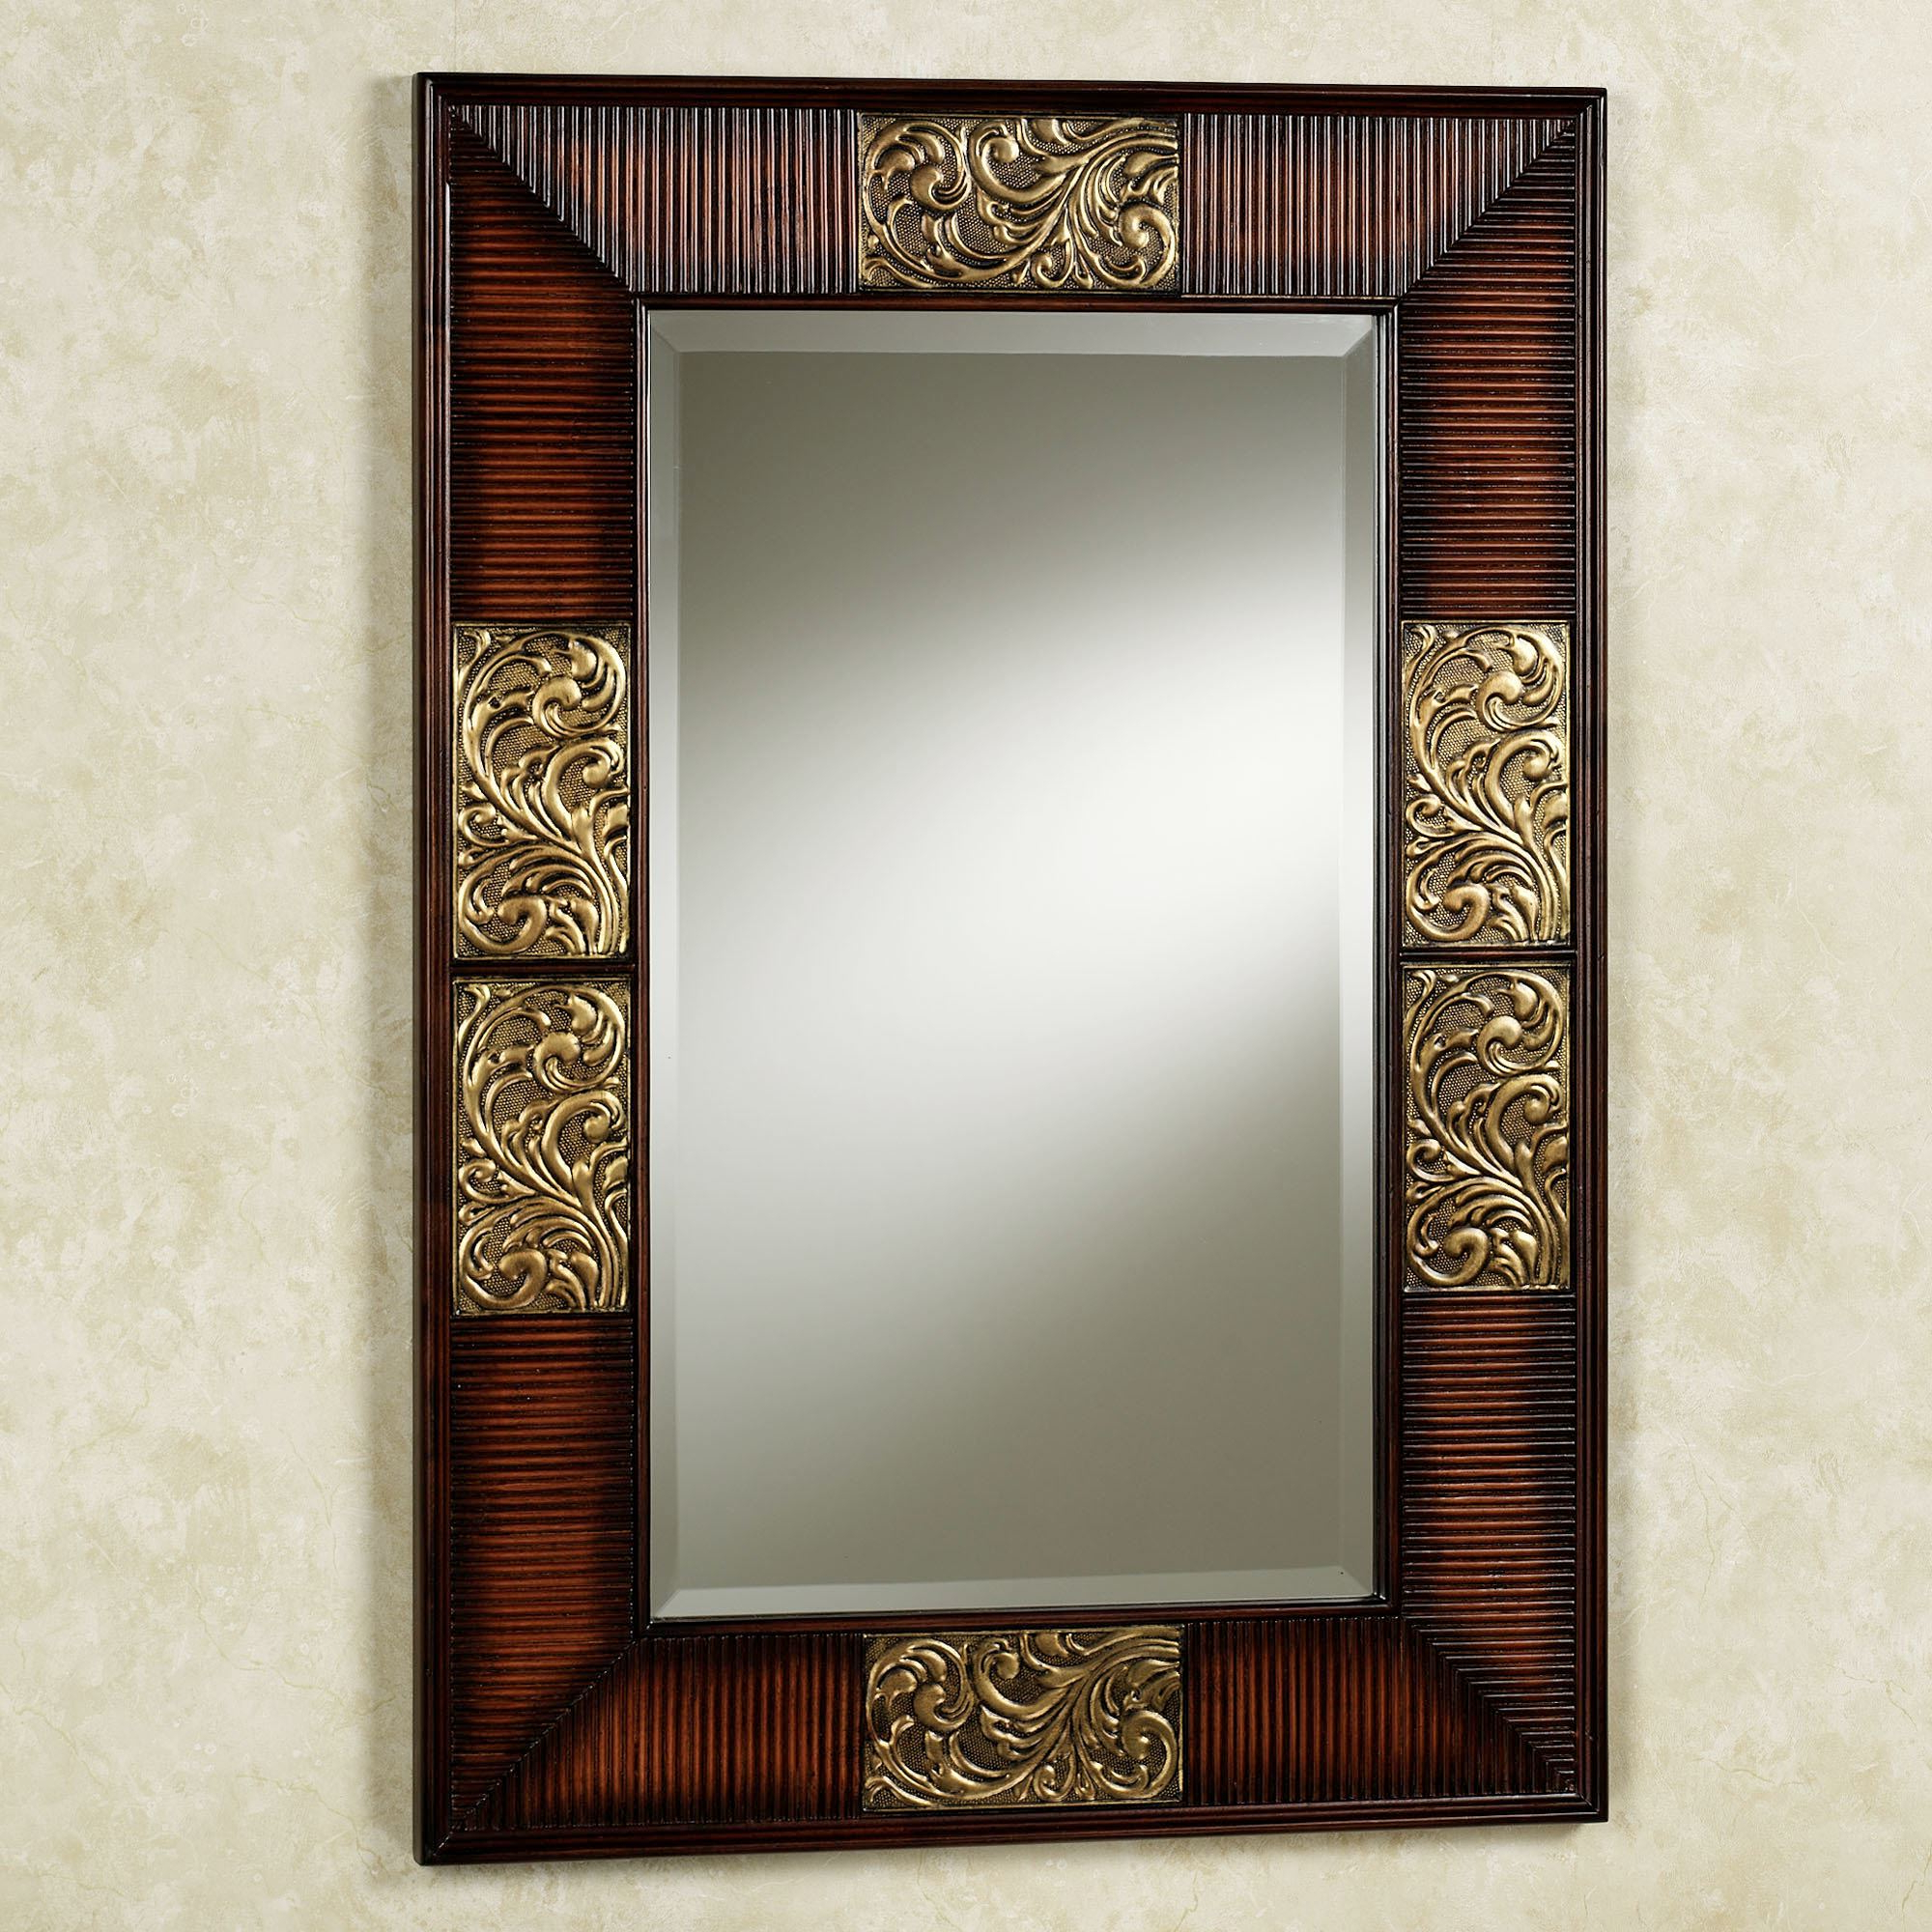 Fashionable Sarantino Wall Mirror With Entry Wall Mirrors (View 10 of 20)